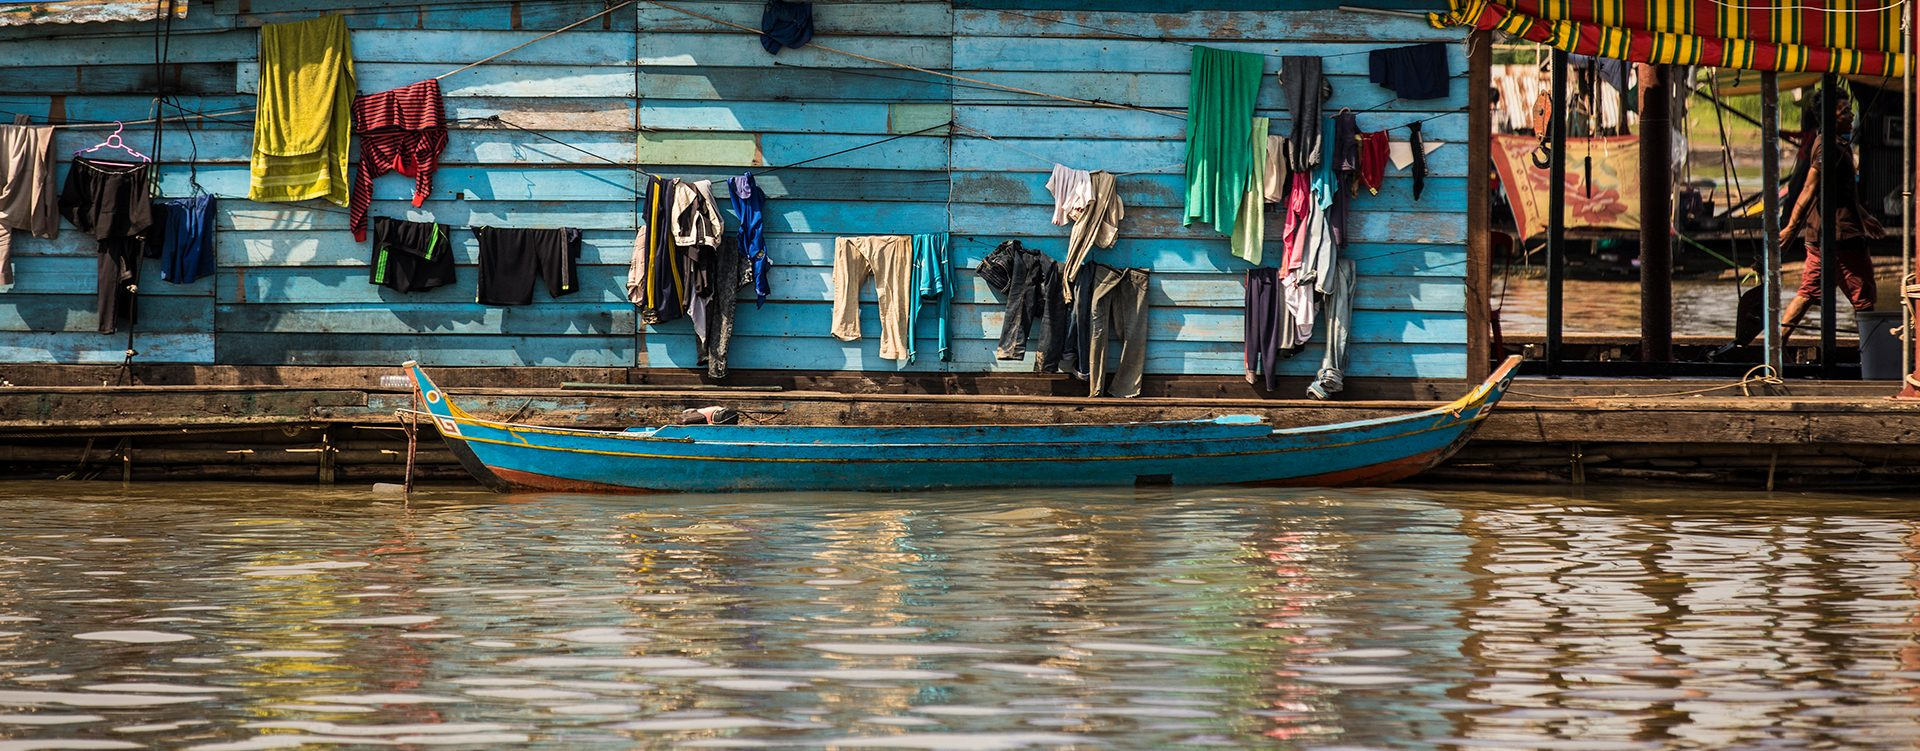 Image of a small boat and clothes hanging on a house on the Mekong River in Cambodia